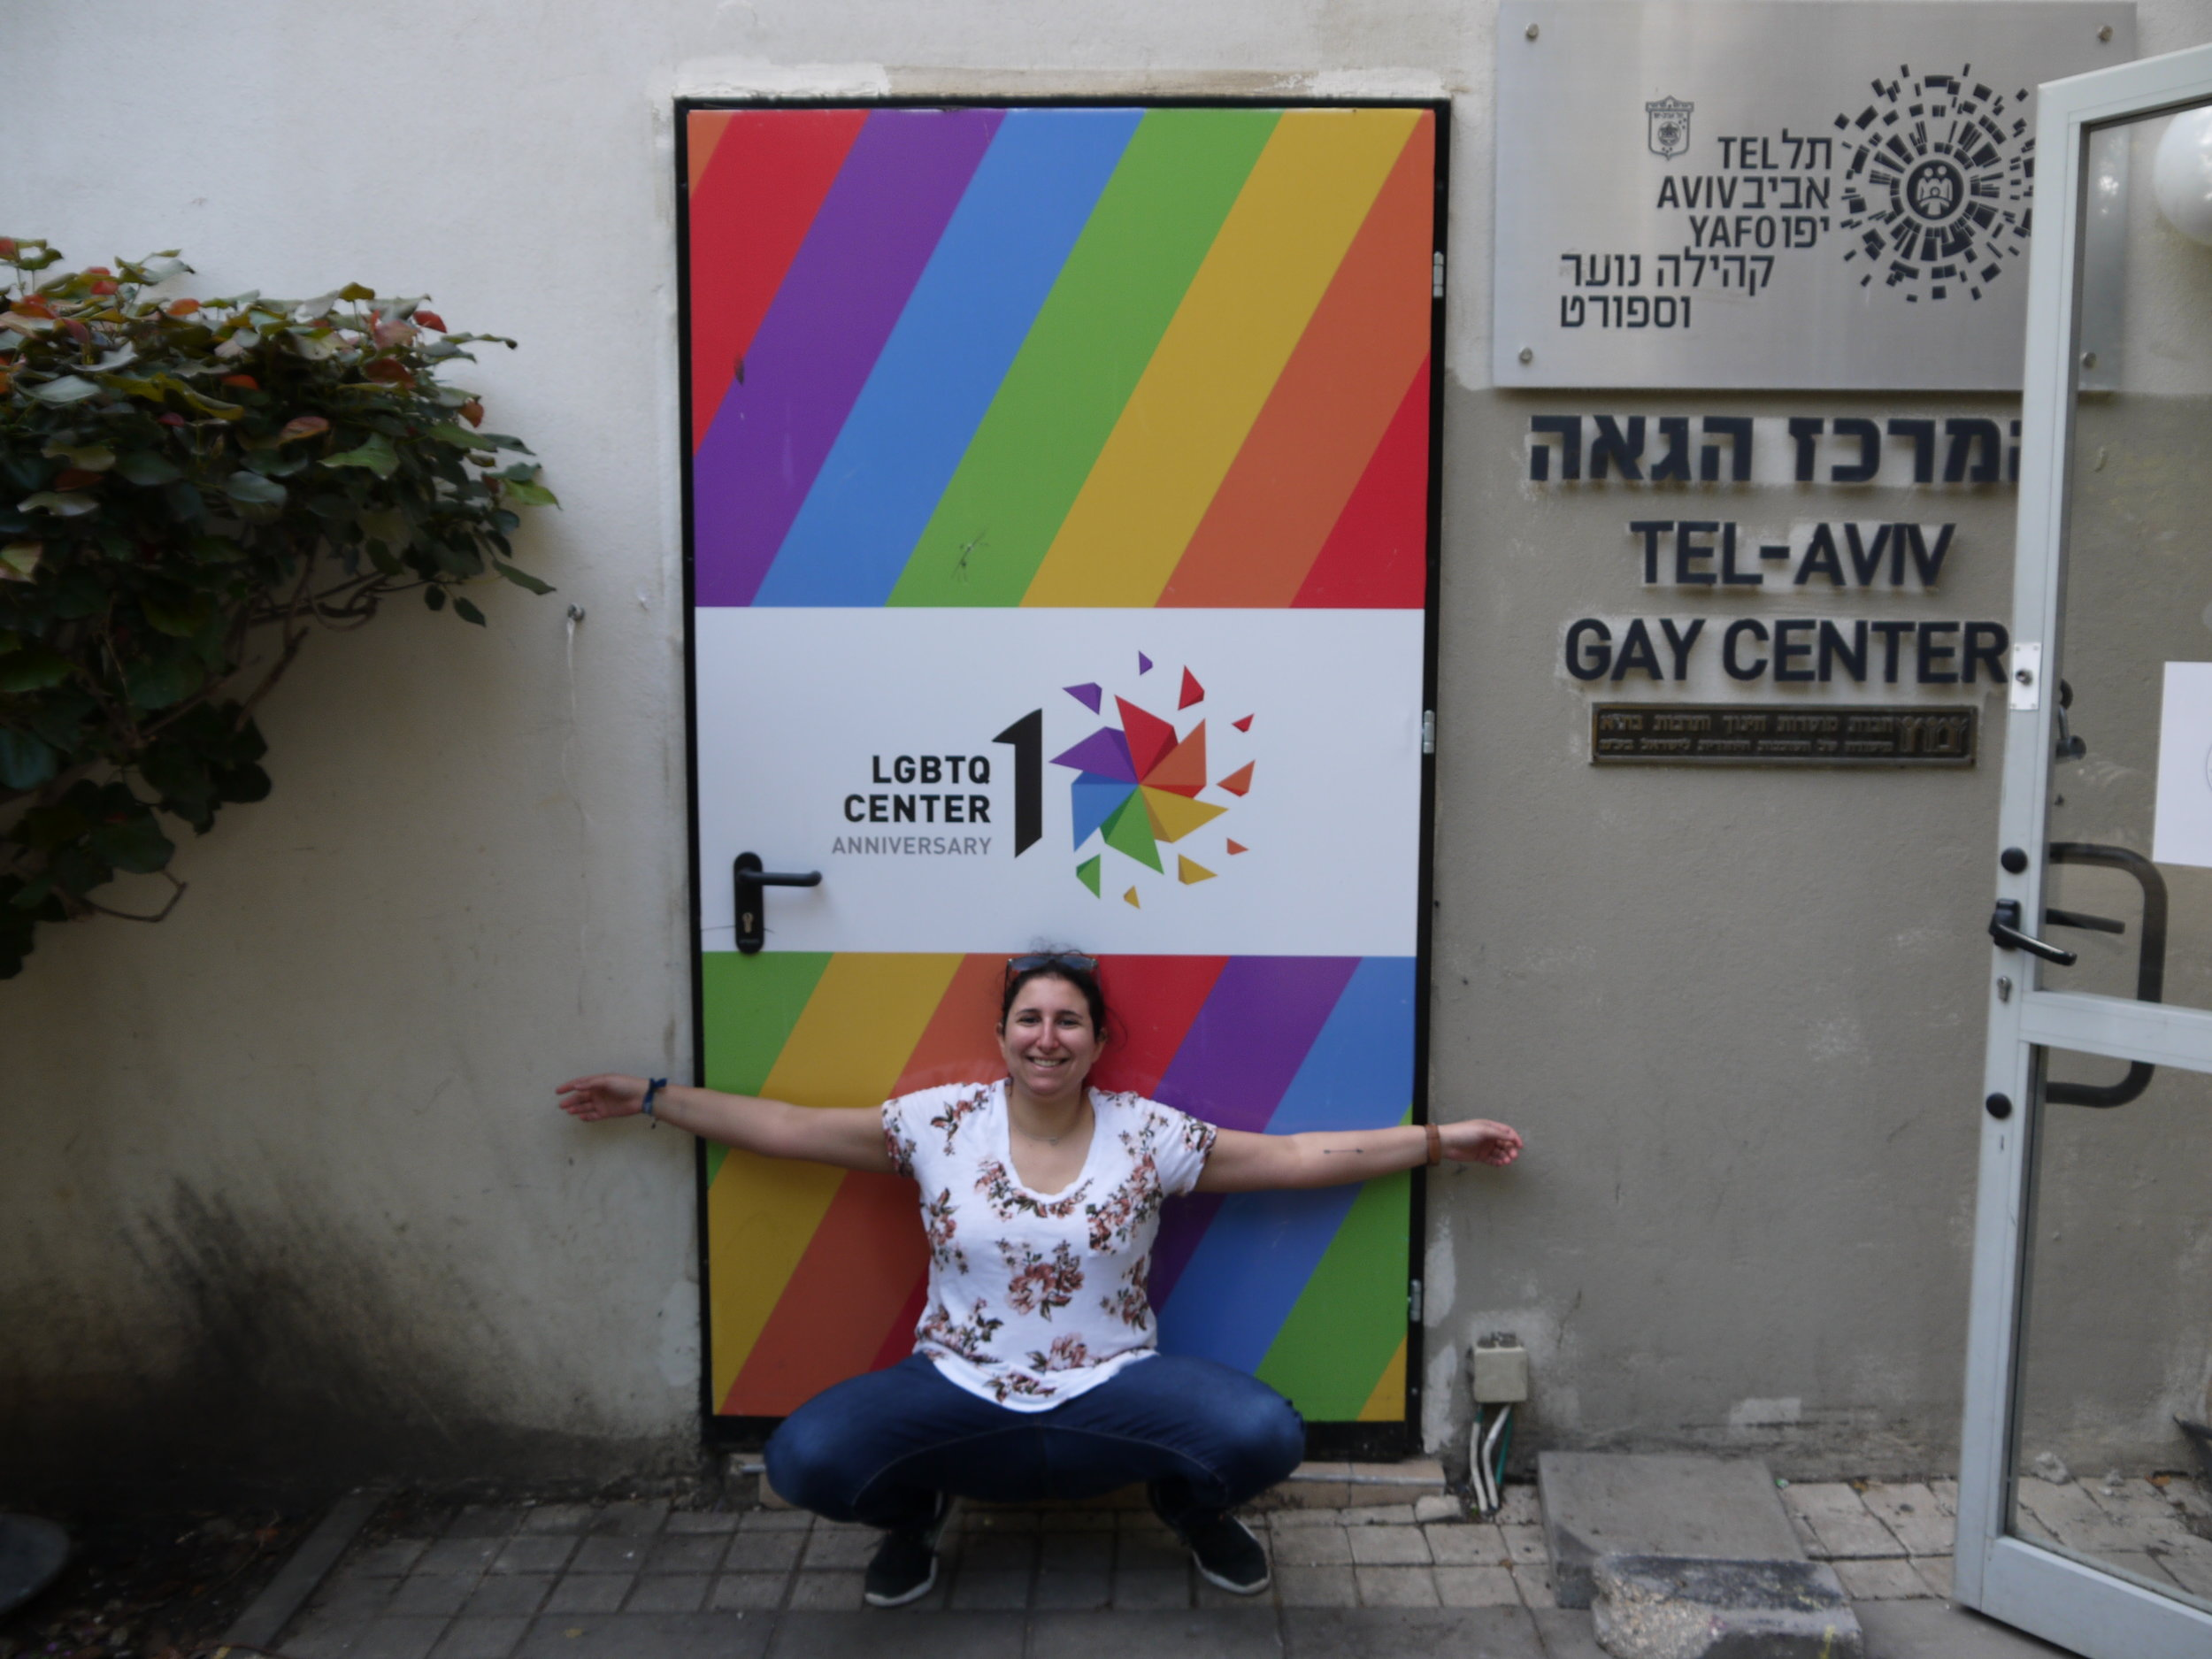 Chelsea in front of Tel-Aviv Gay Center. Photo courtesy of Alisa Brown